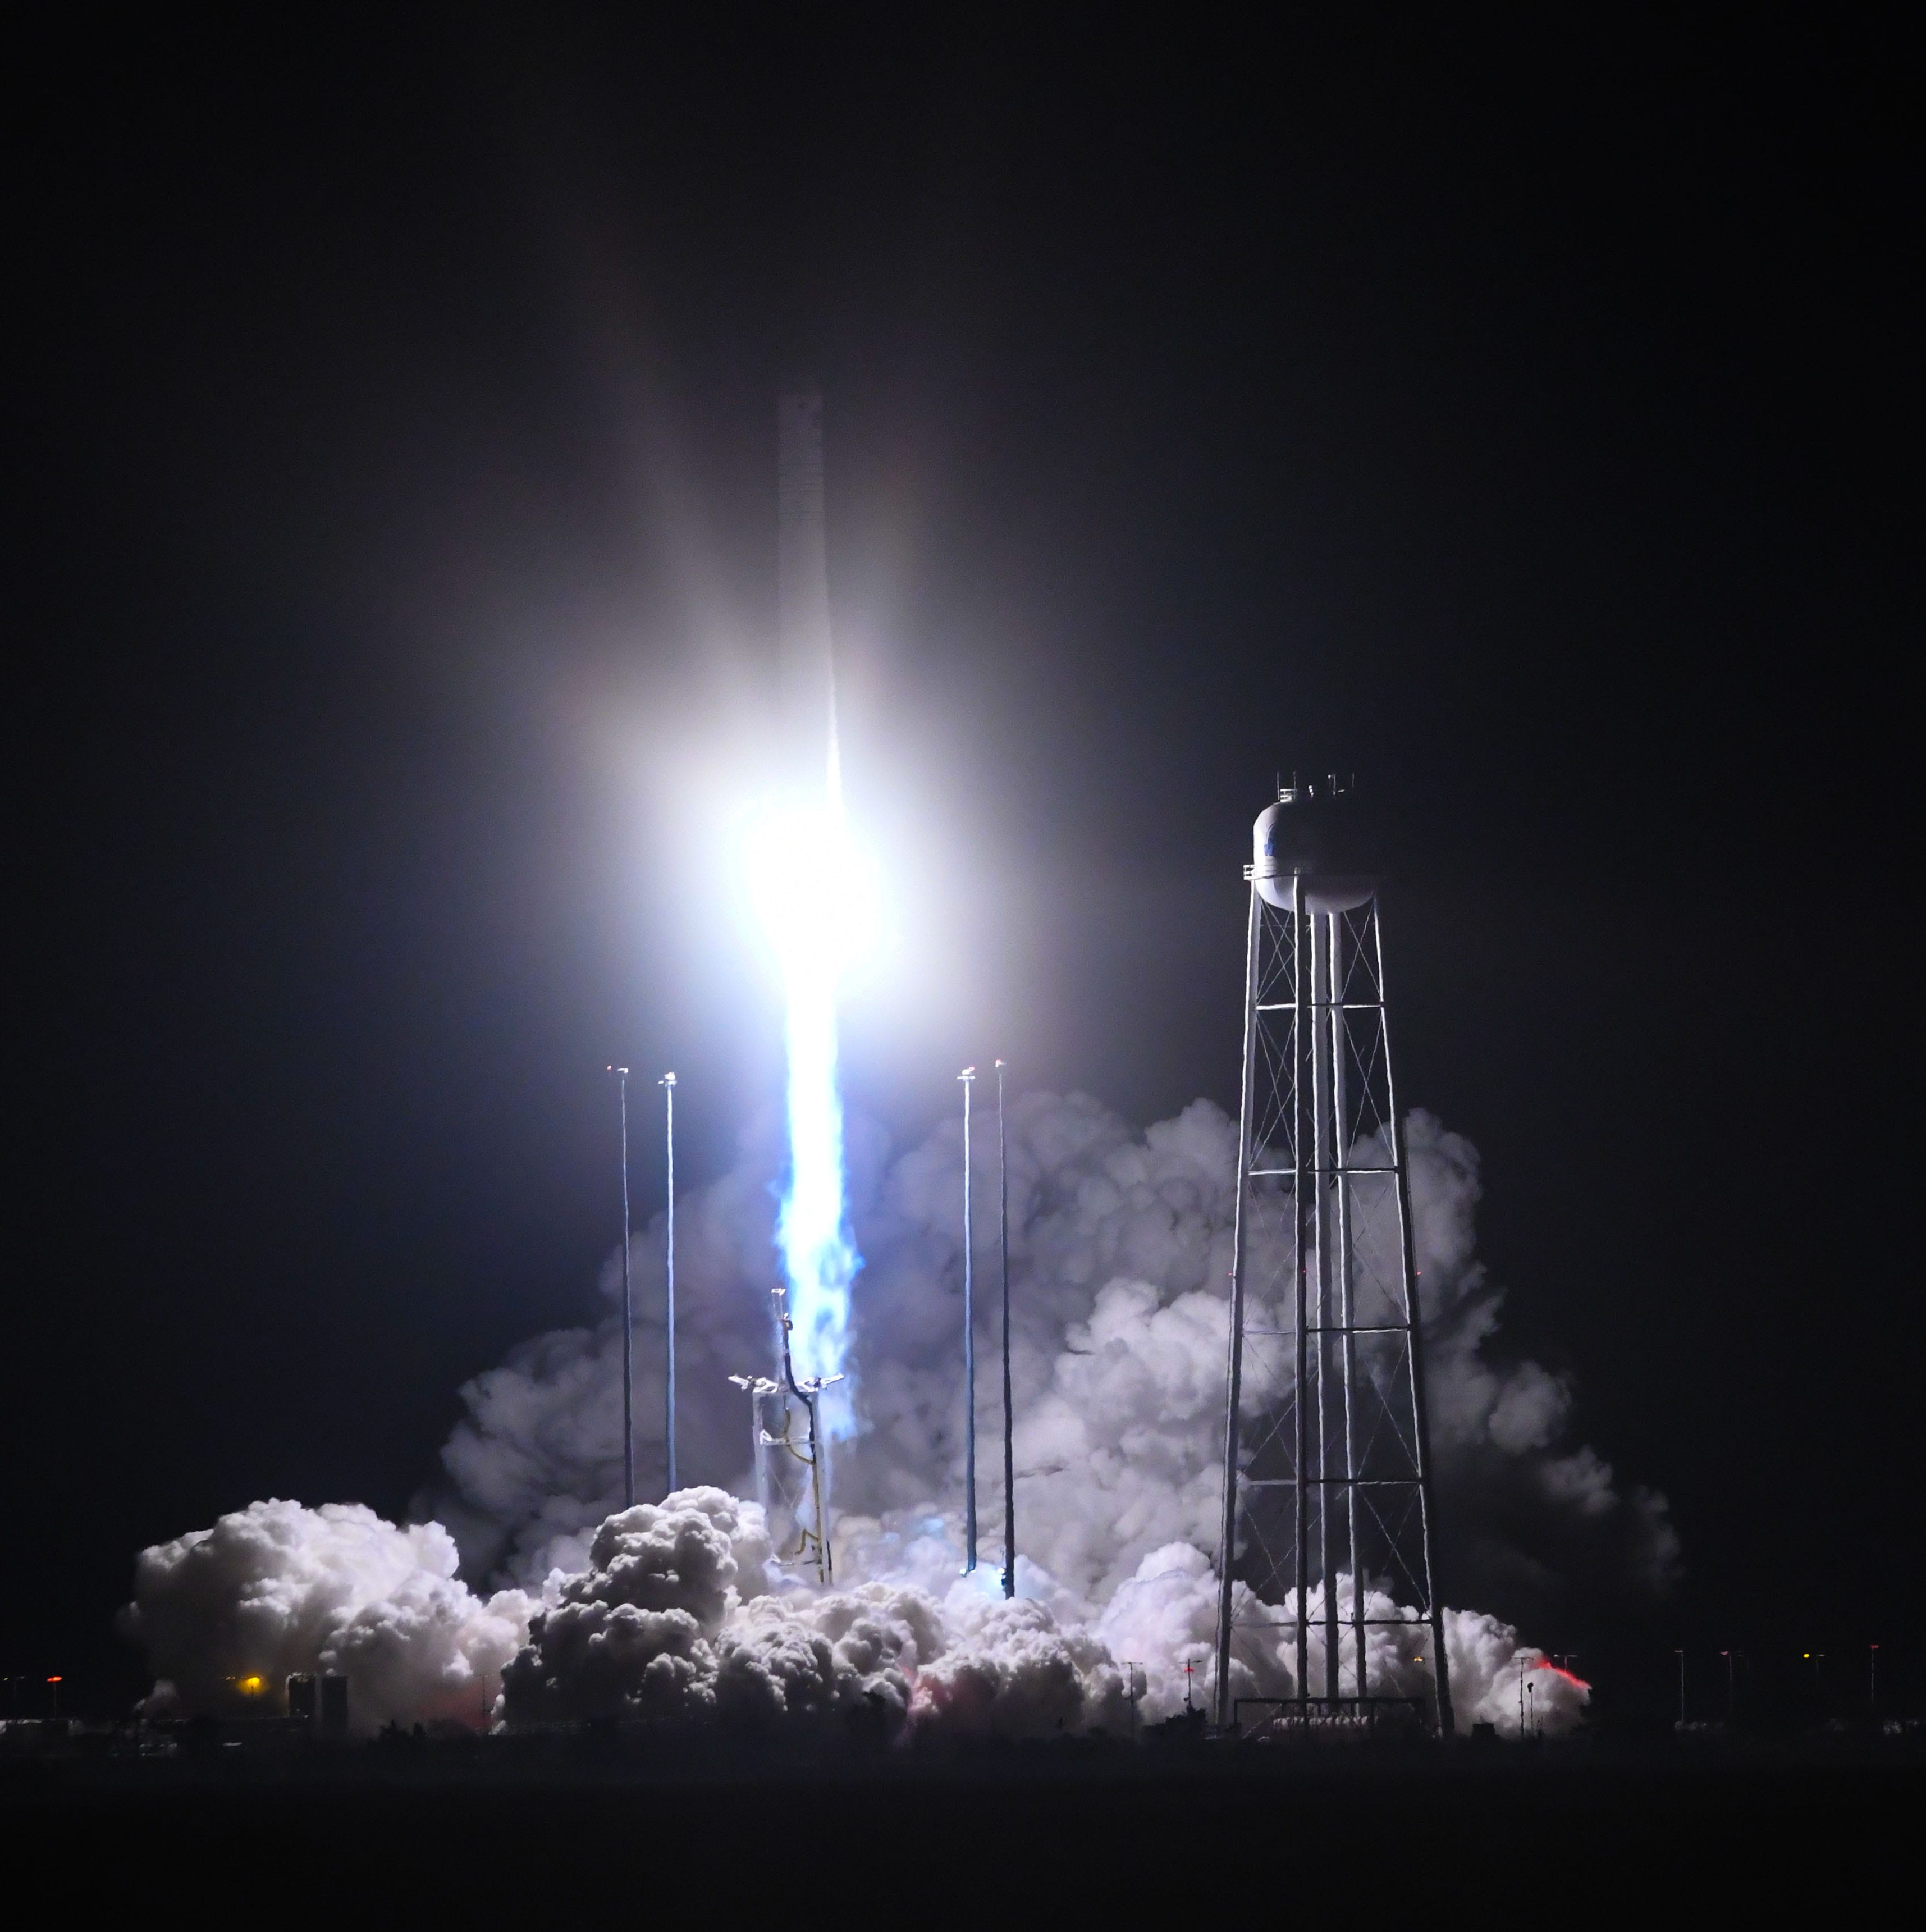 NASA Wallops: Here's what you need to know about the NG-11 Antares rocket launch